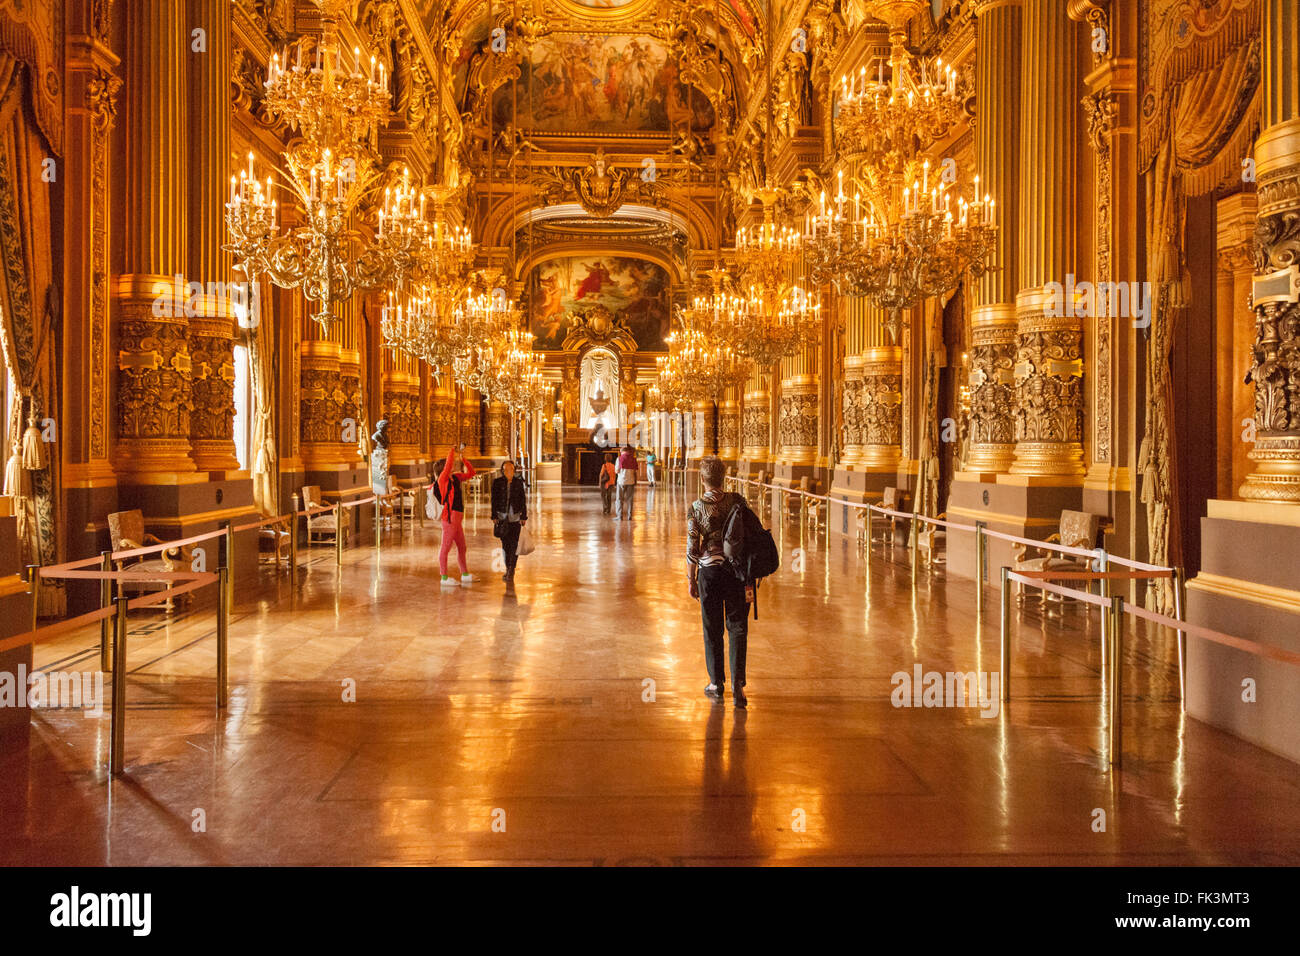 Tourists in Le Grand Foyer of Palais Granier in the Paris Opera House - Stock Image